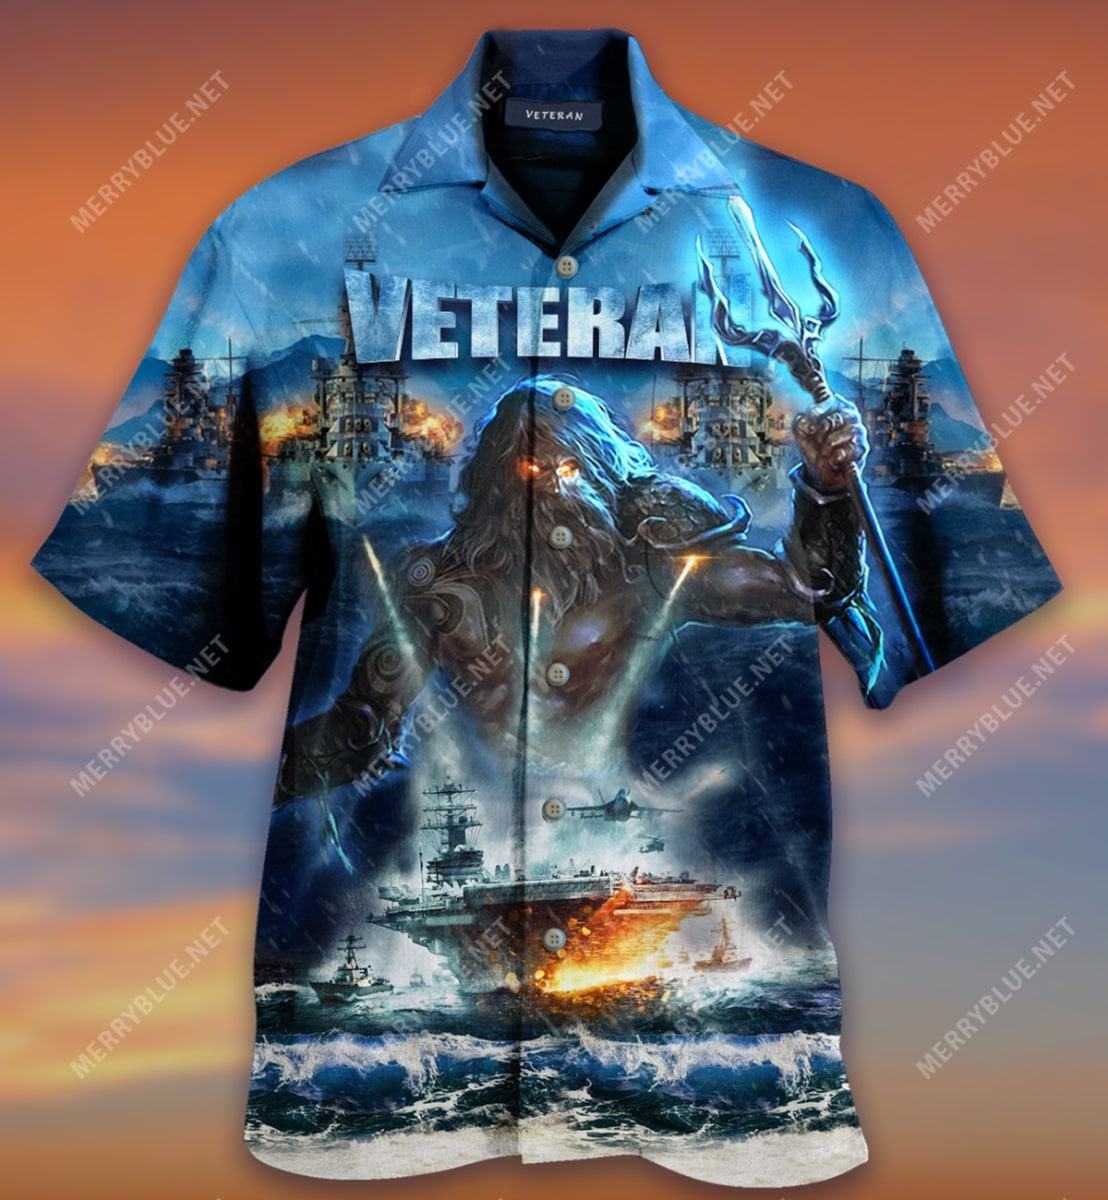 united state veterans on the ocean all over printed hawaiian shirt 4